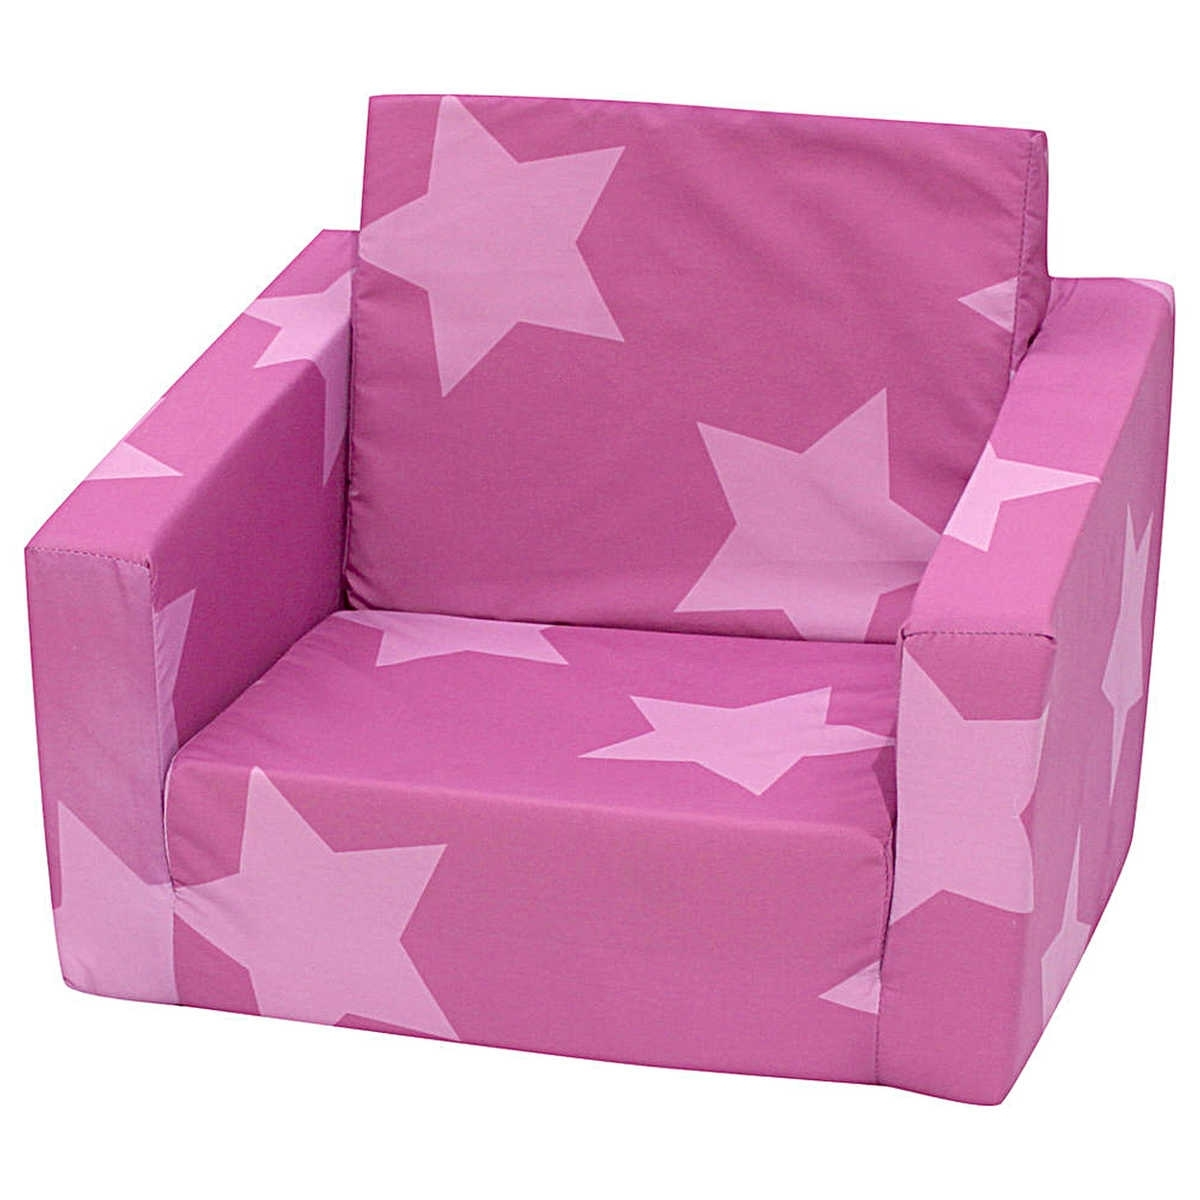 Flip Out Sofa Kids – Home And Textiles In Well Liked Flip Out Sofa For Kids (View 14 of 15)